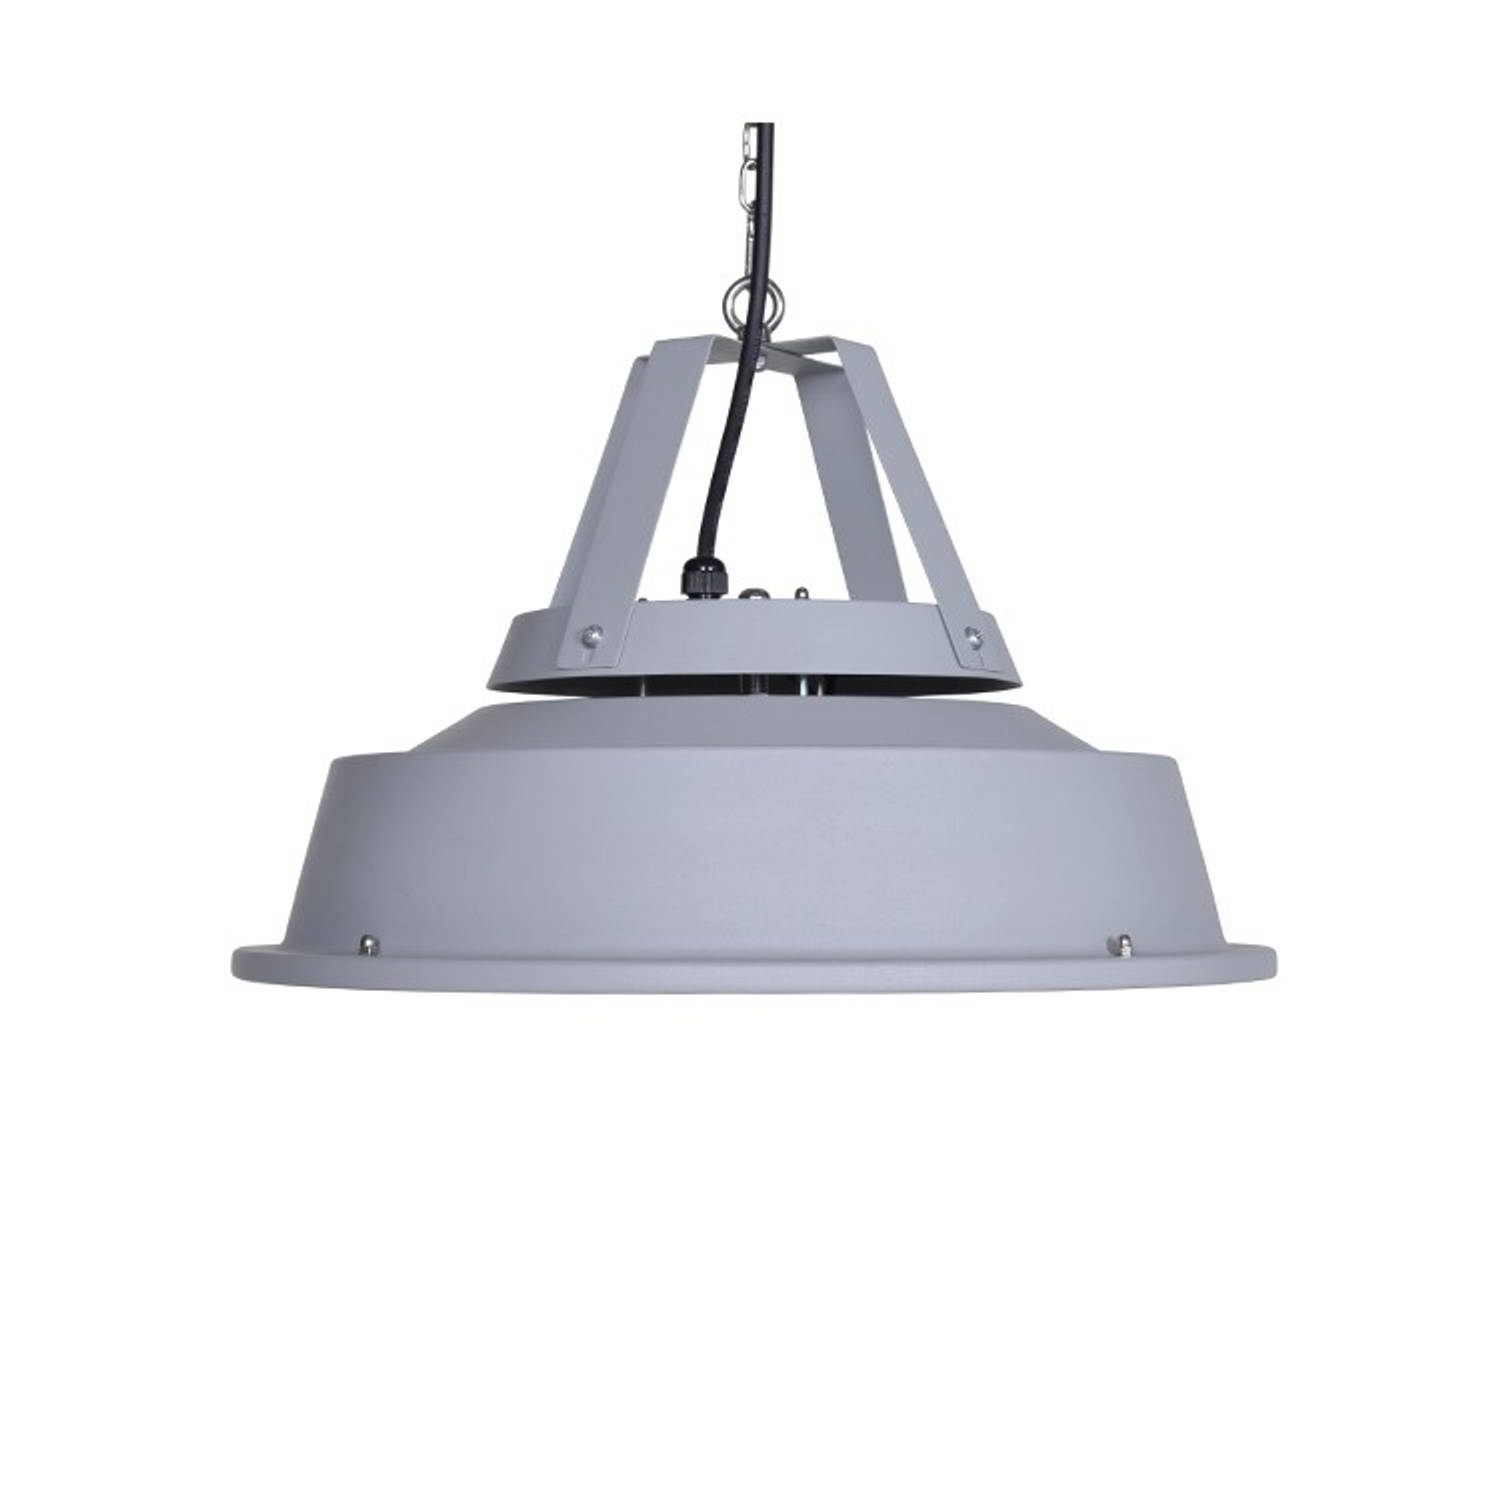 Retro hangende heater 43cm mat carbon grey/ 1500w